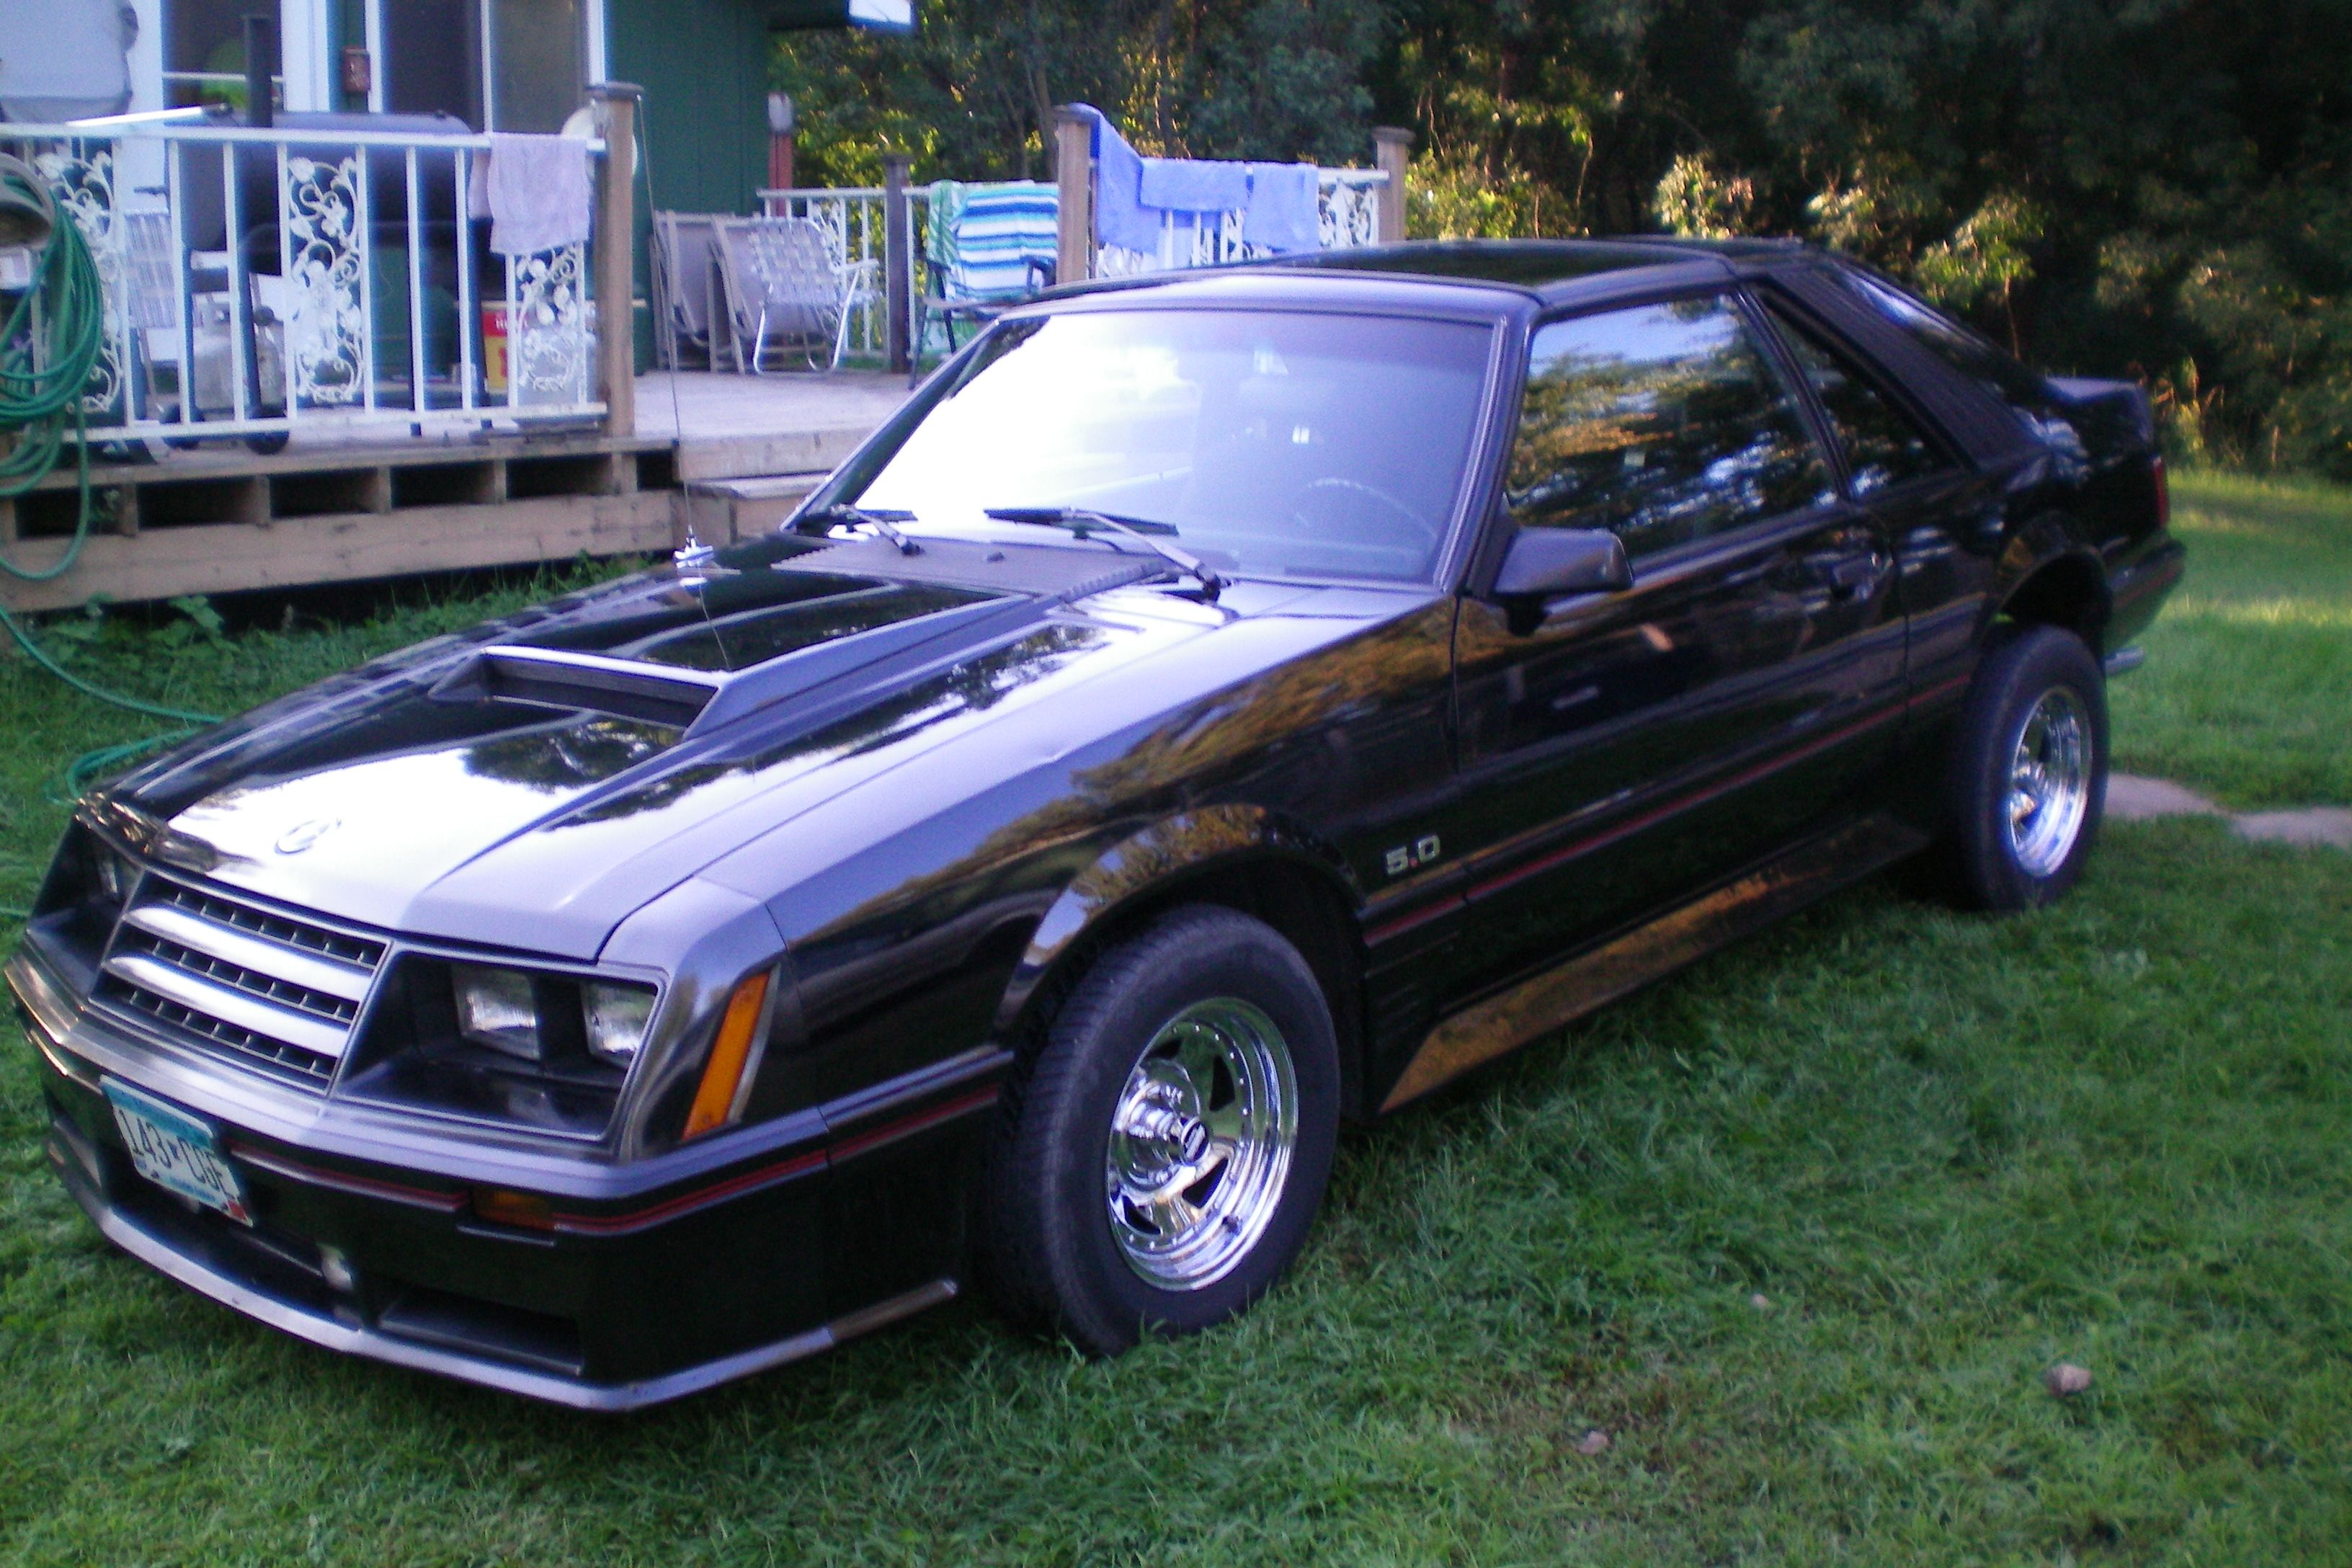 I Own A 1982 Ford Mustang G T 5 0 Fox Body Mustang Mustang Gt Ford Mustang Gt